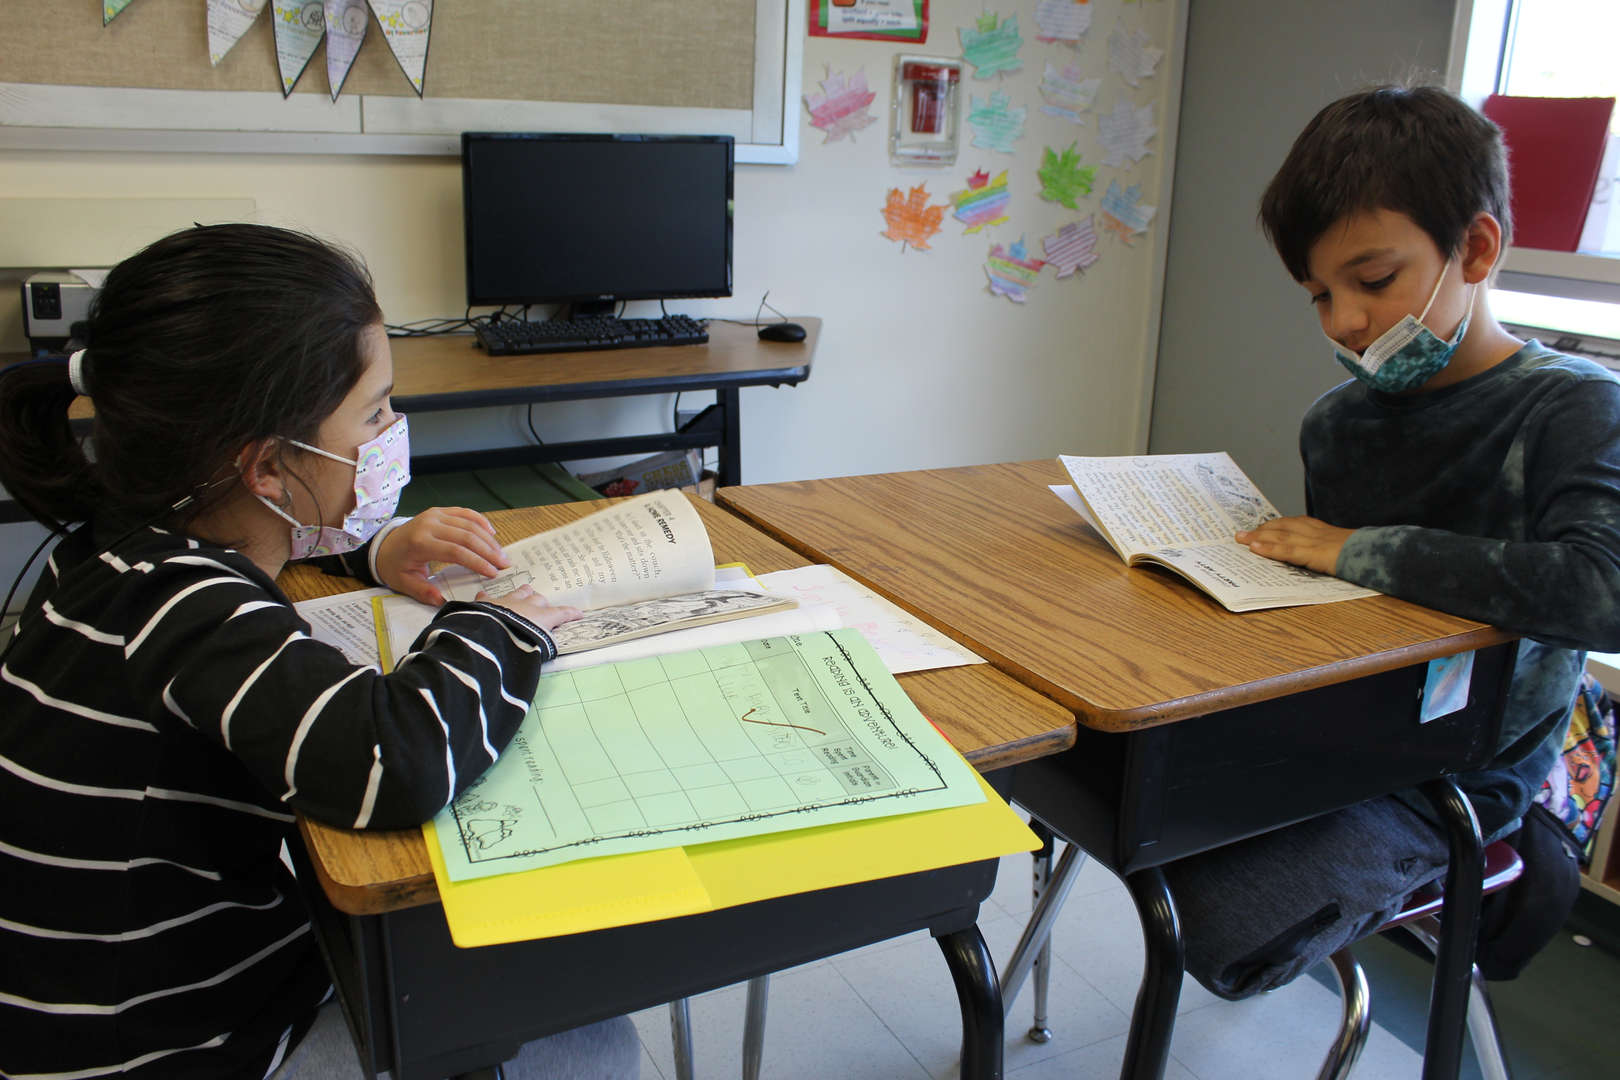 Boy and girl seated at desks reading